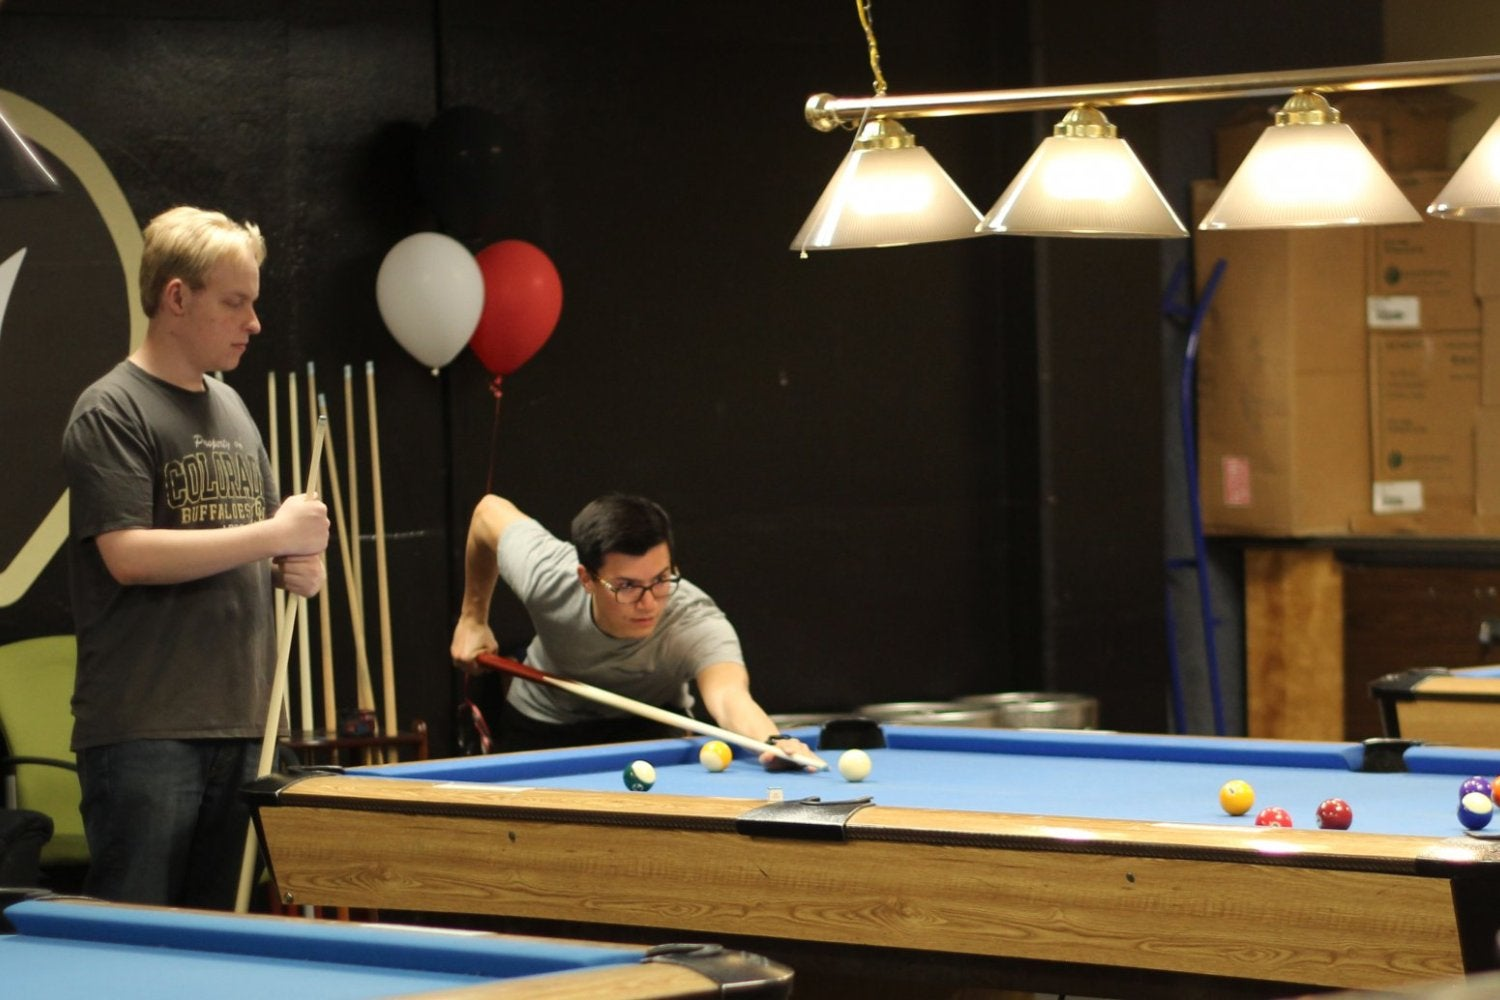 Students playing billiards at The Connection